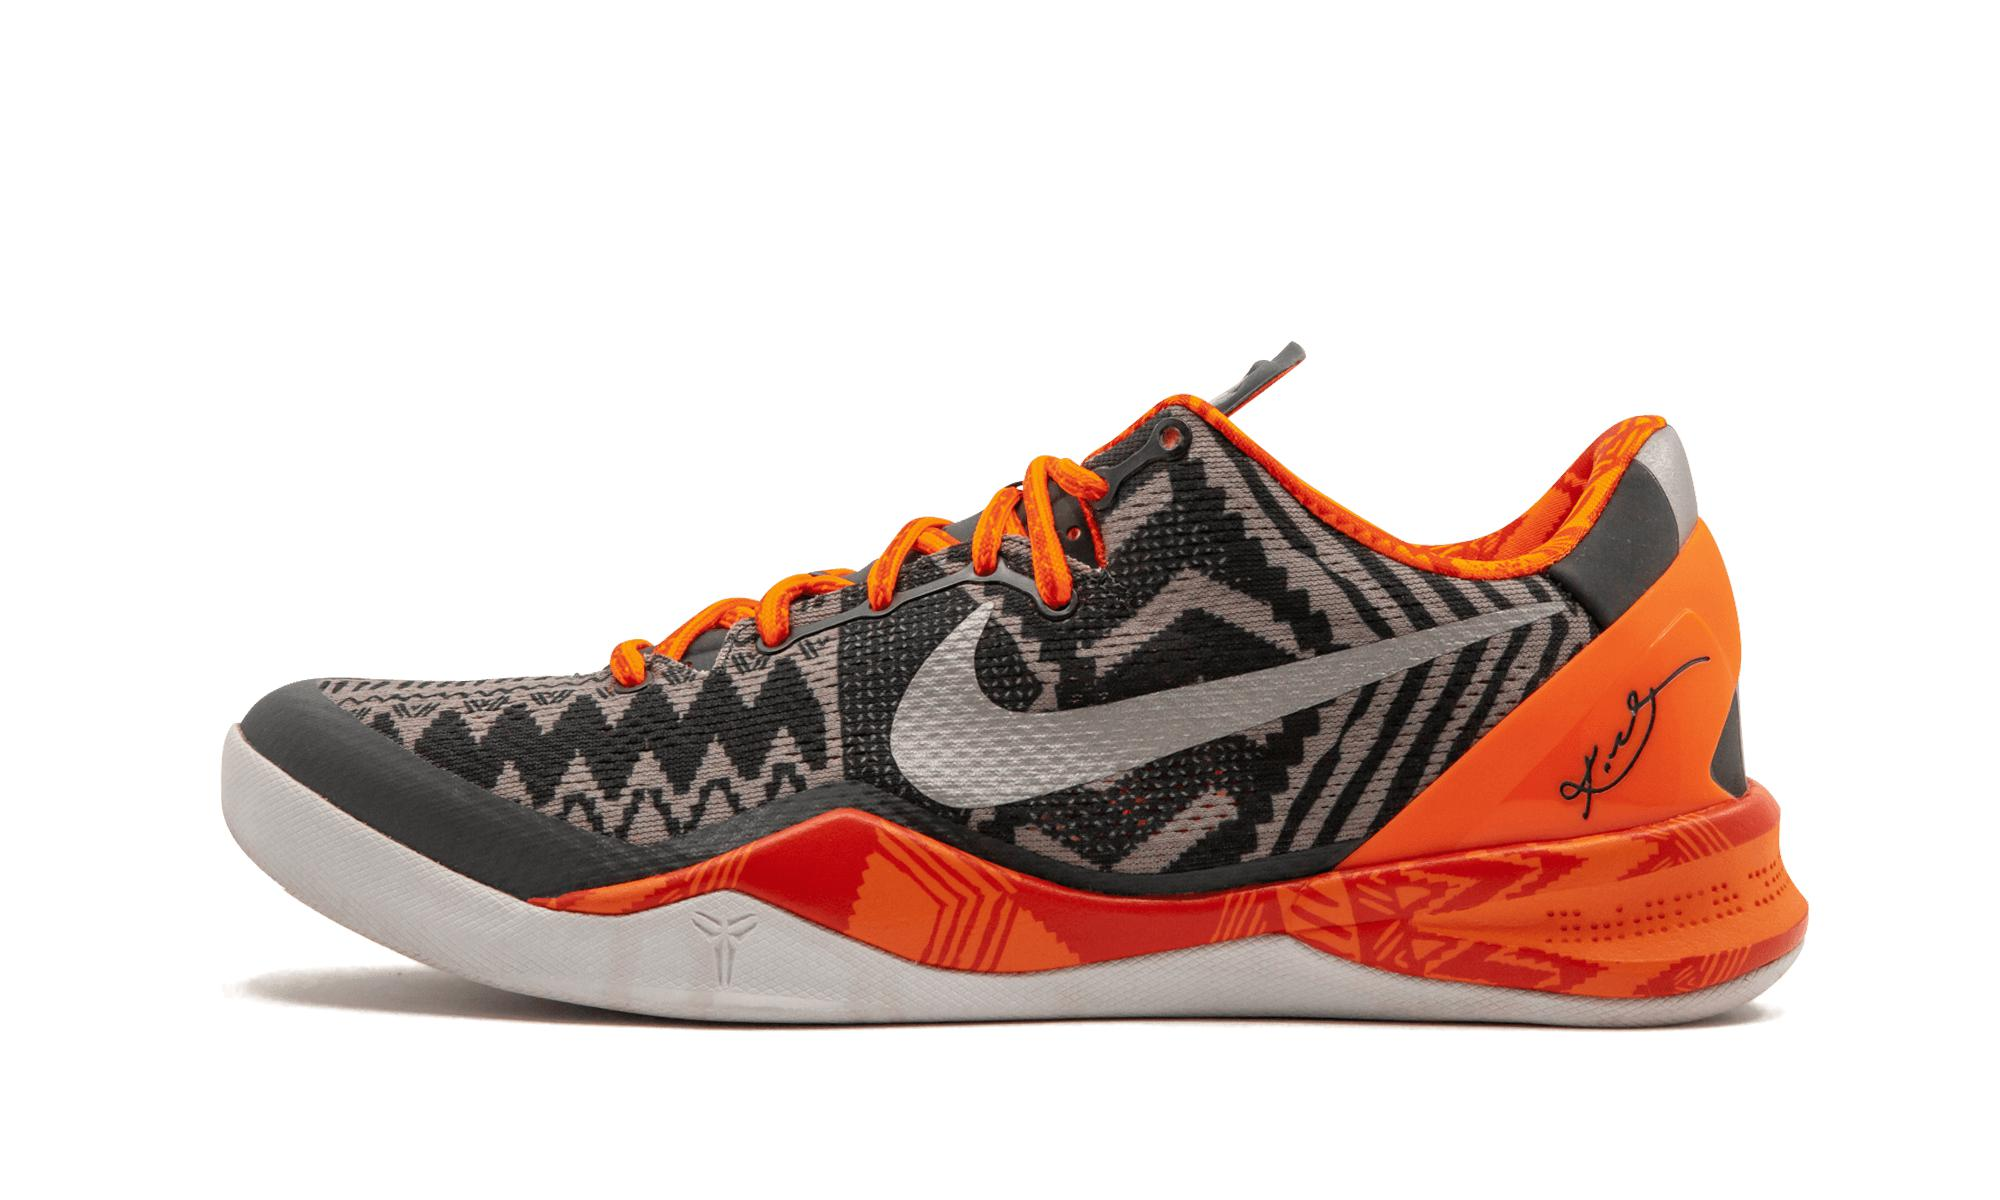 8a472bf2e476 Lyst - Nike Kobe 8 Systems - Bhm for Men